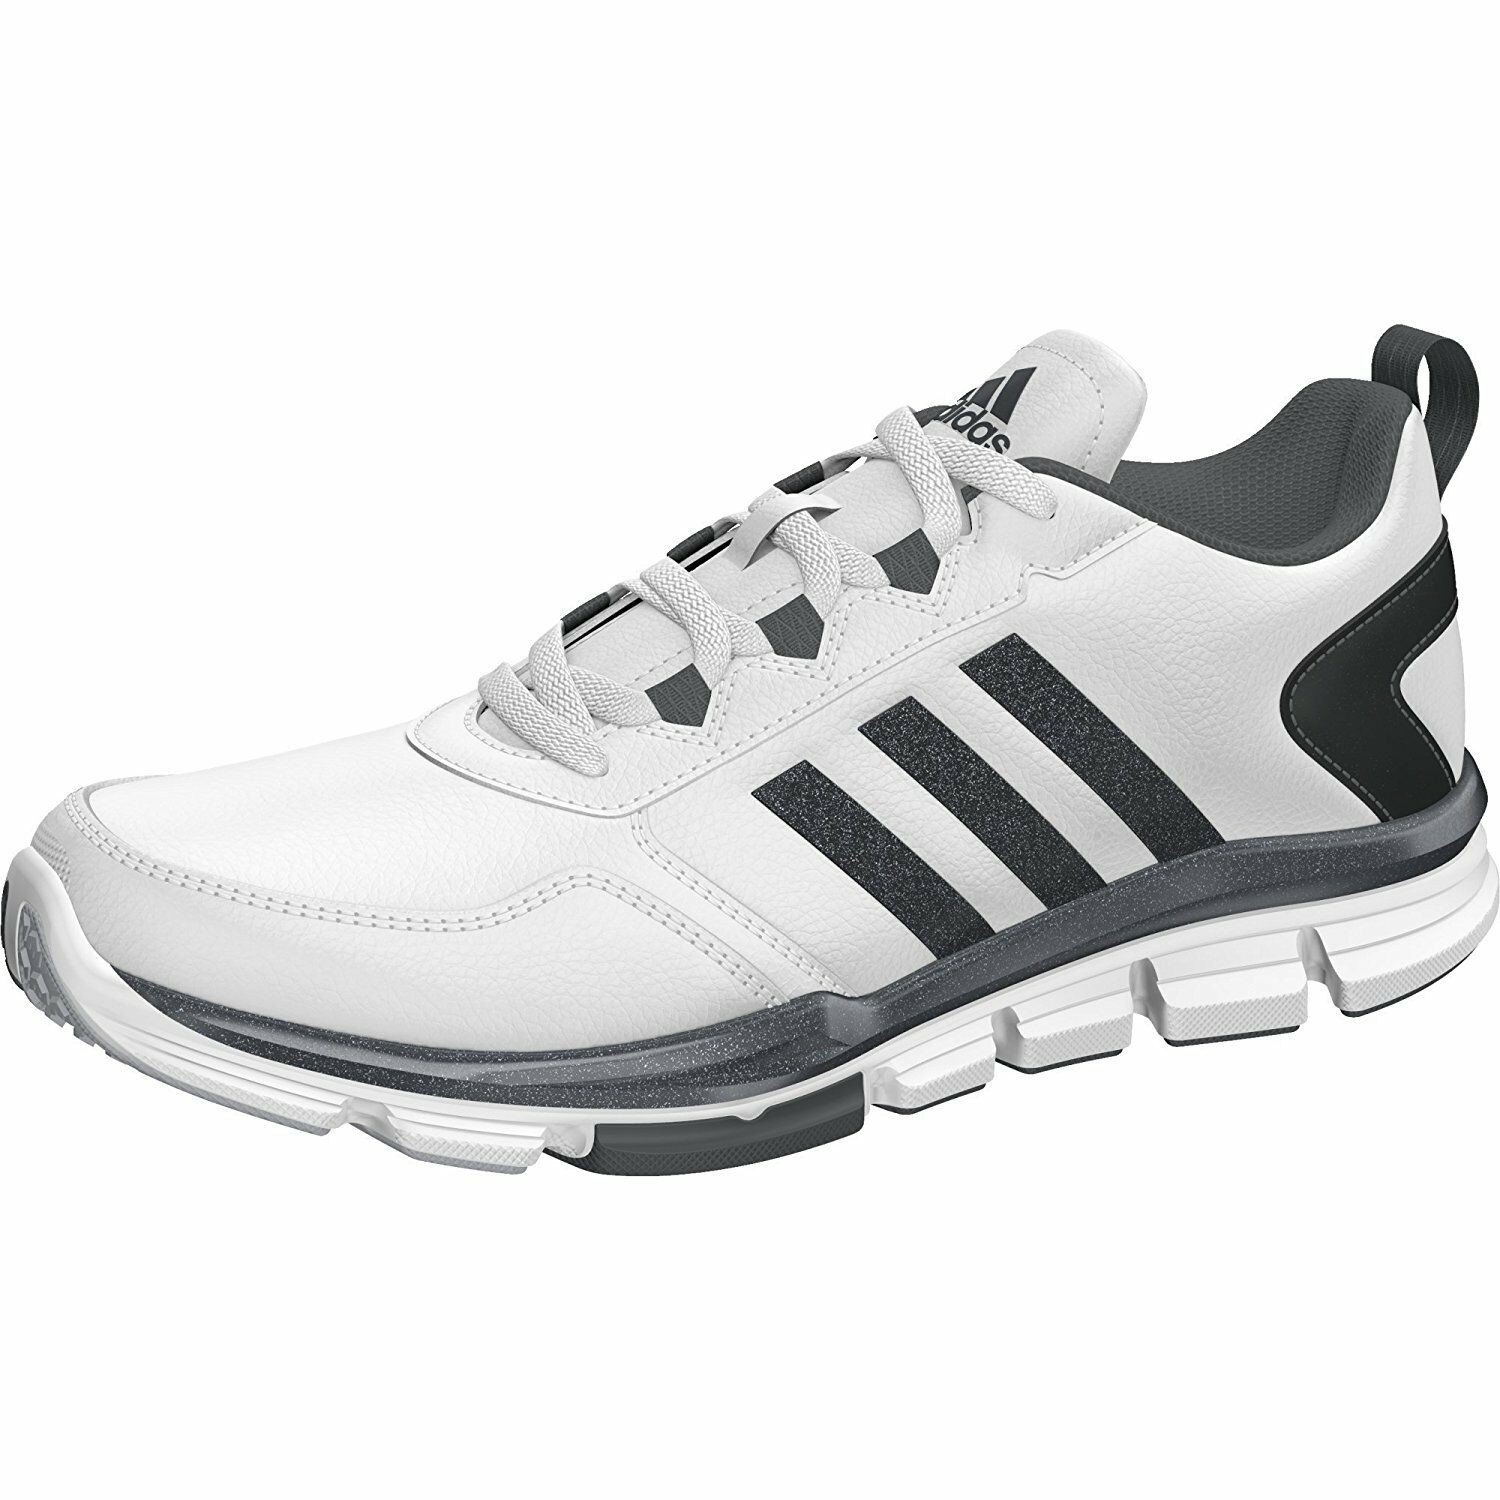 Adidas Men's Speed Trainer White/Gray 2 Athletic Shoes Size 8M White/Gray Trainer d9c44c